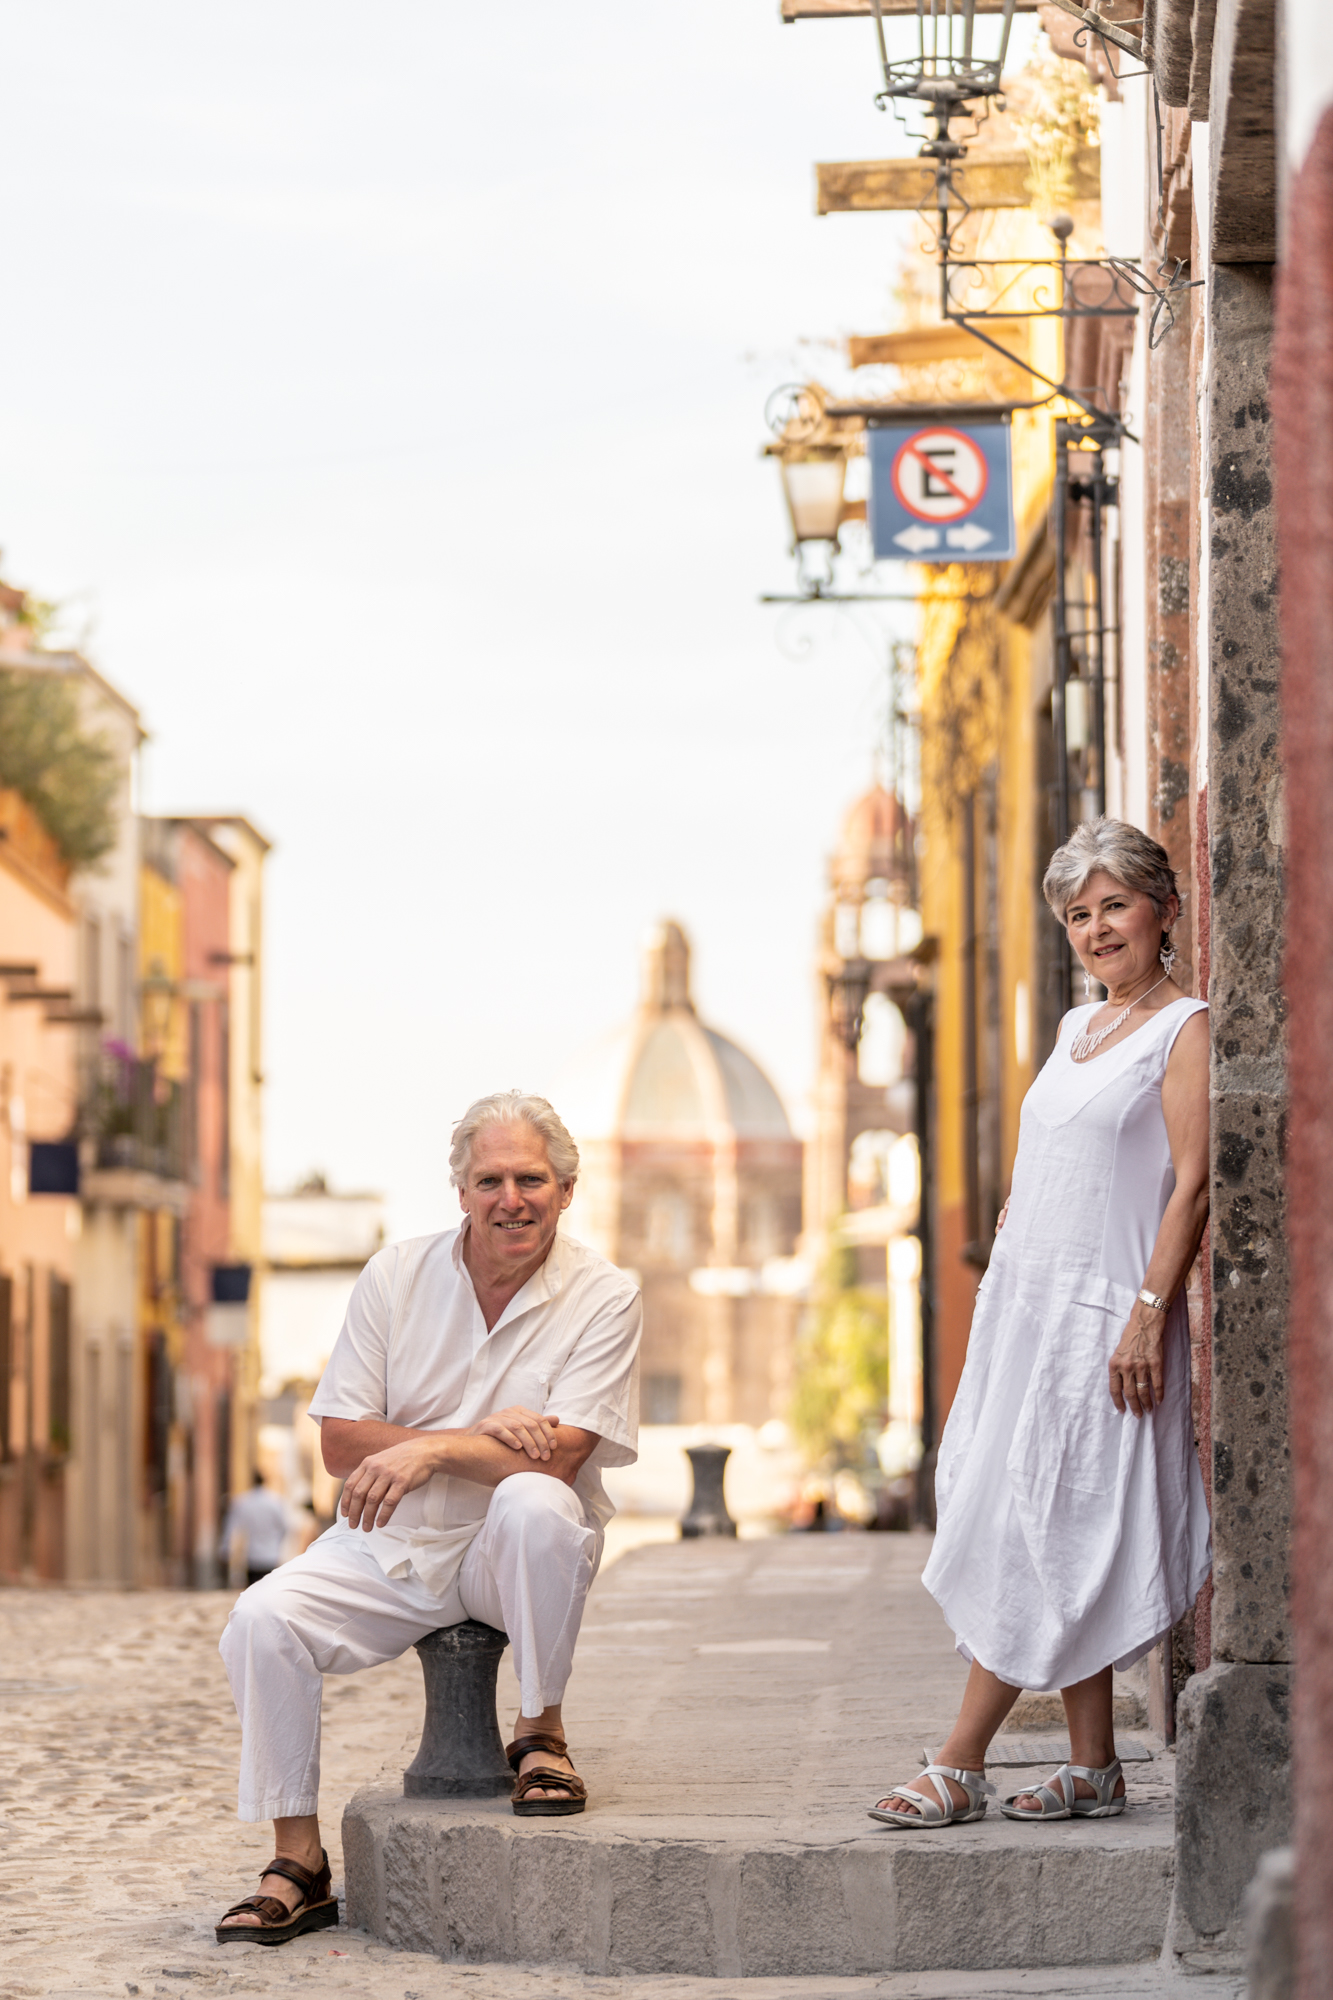 Photoshoot session in San Miguel de Allende with Suzanne and Leo-35.jpg